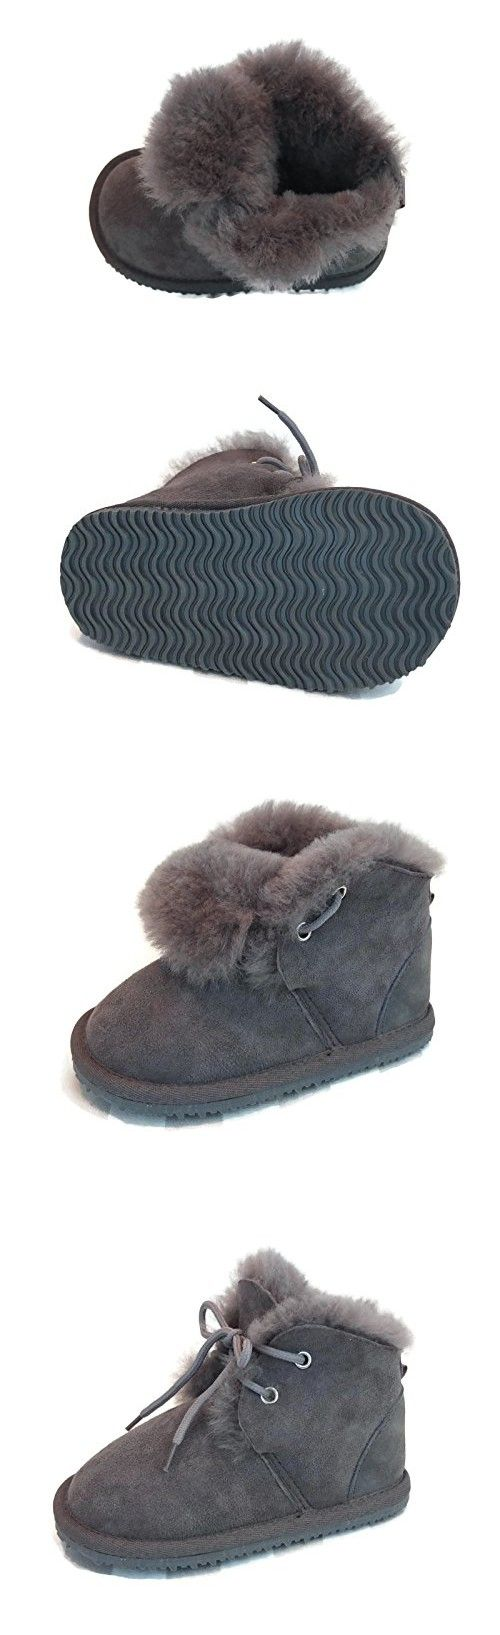 Cool Beans Genuine Sheepskin Leather Toddler Boy Winter Boots (Toddler size 5)